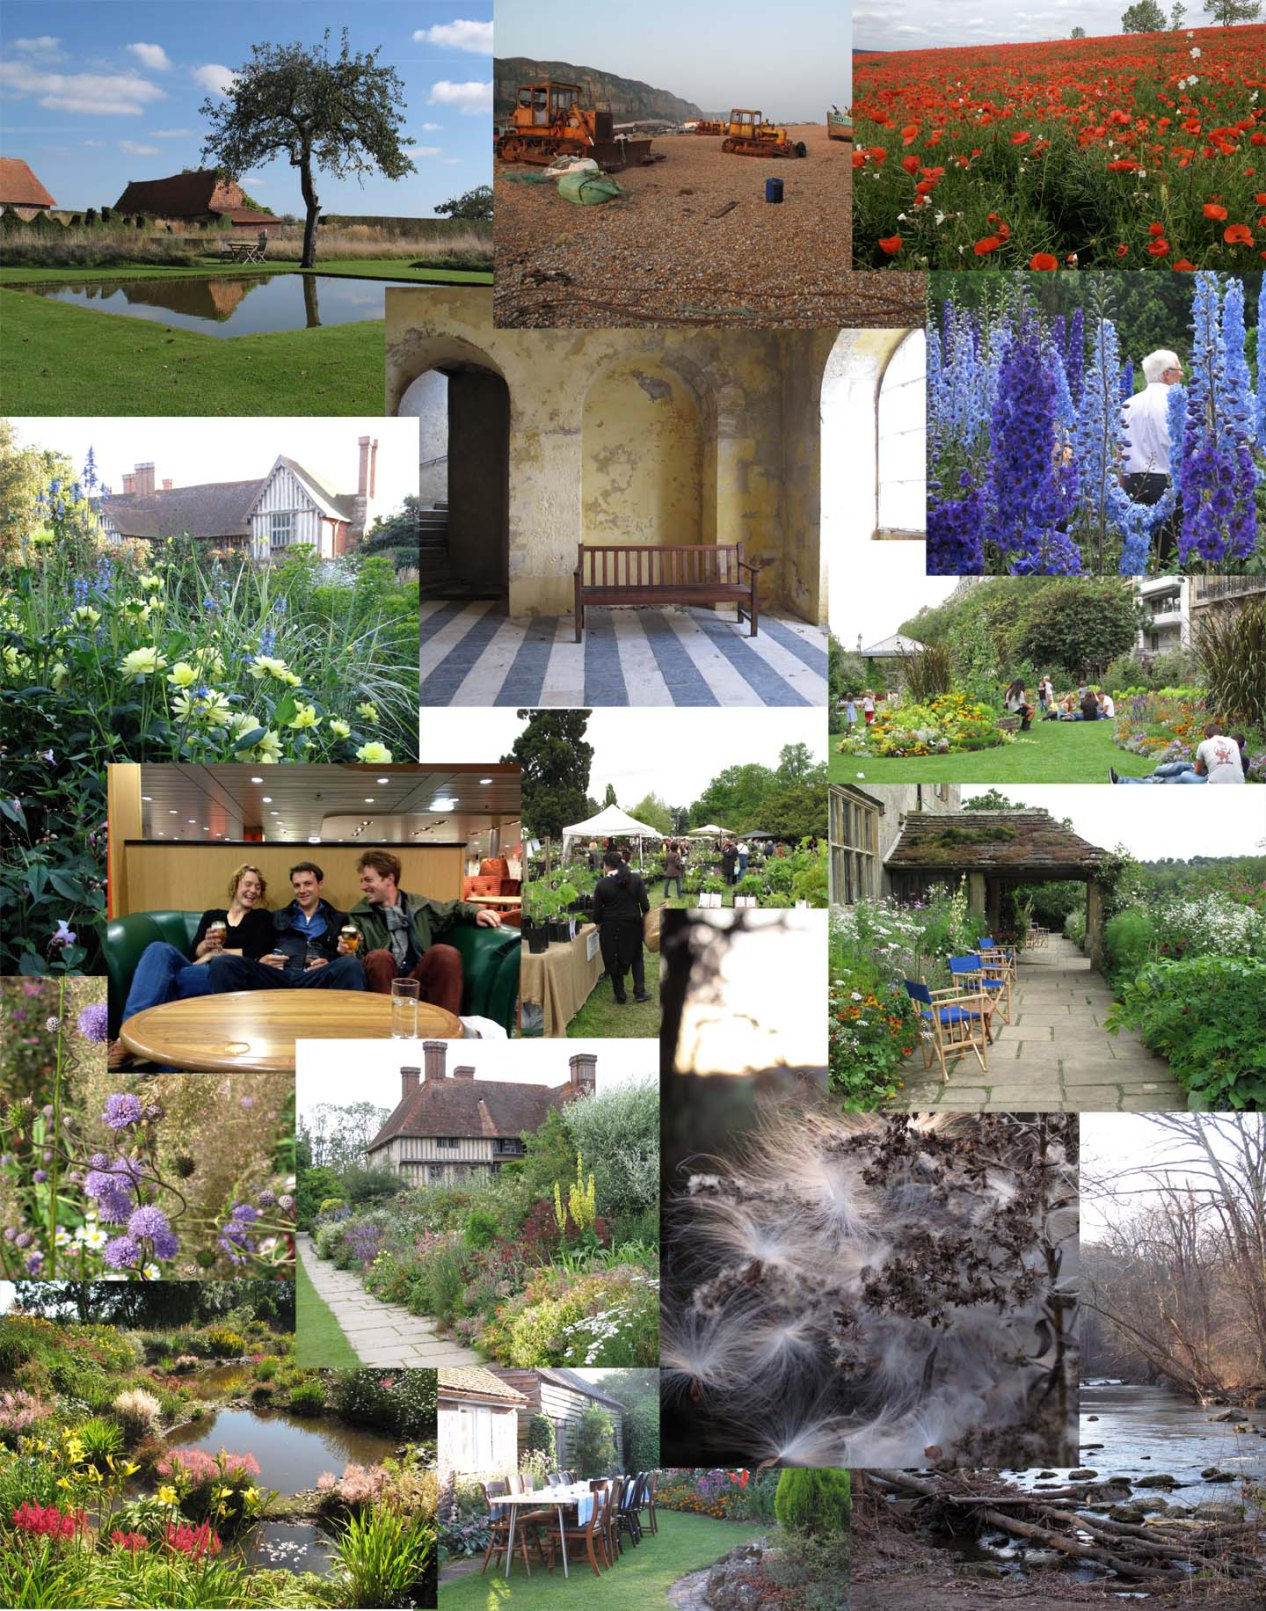 Left beginning from upper left to the bottom right: Le Jardin Plume; Hastings Beach; poppies in Normandy, France; dahlias at Great Dixter, England; Promenade plantée in Paris; delphiniums at the RHS Plant Trials beds at Wisley; park in Blois, France; Friends drinking - Rachael, Yannick, and James; Courson Flower Show in France;  Succissia pratensis; Great Dixter's Long Border; Milkweeds and goldenrod in Rhode Island;  Keith Wiley's Wildside in Devon, UK; dinner at private garden; White Clay Creek Preserve, Pennsylvania